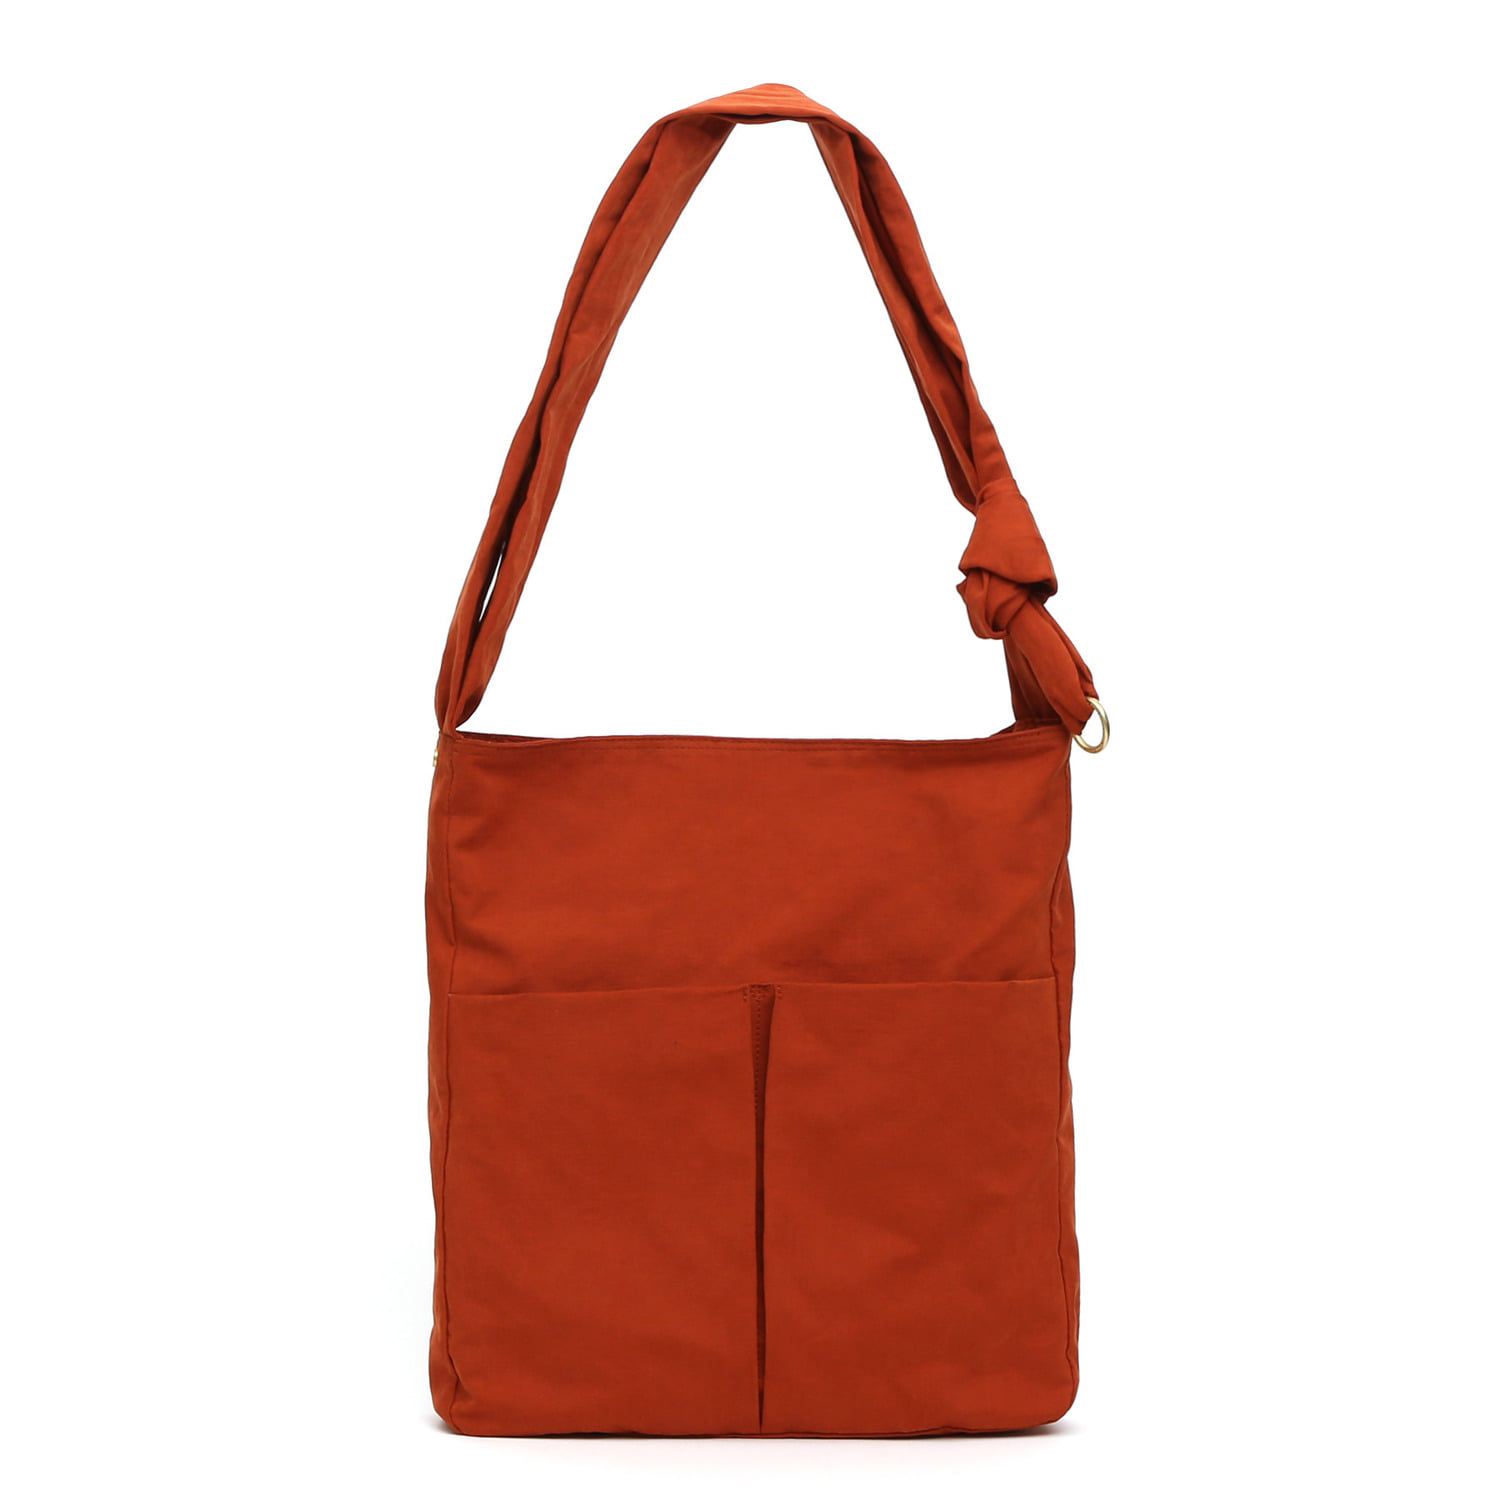 [2차 재입고] SQUARE BAG / WRINKLE / NPC / BRICK ORANGE